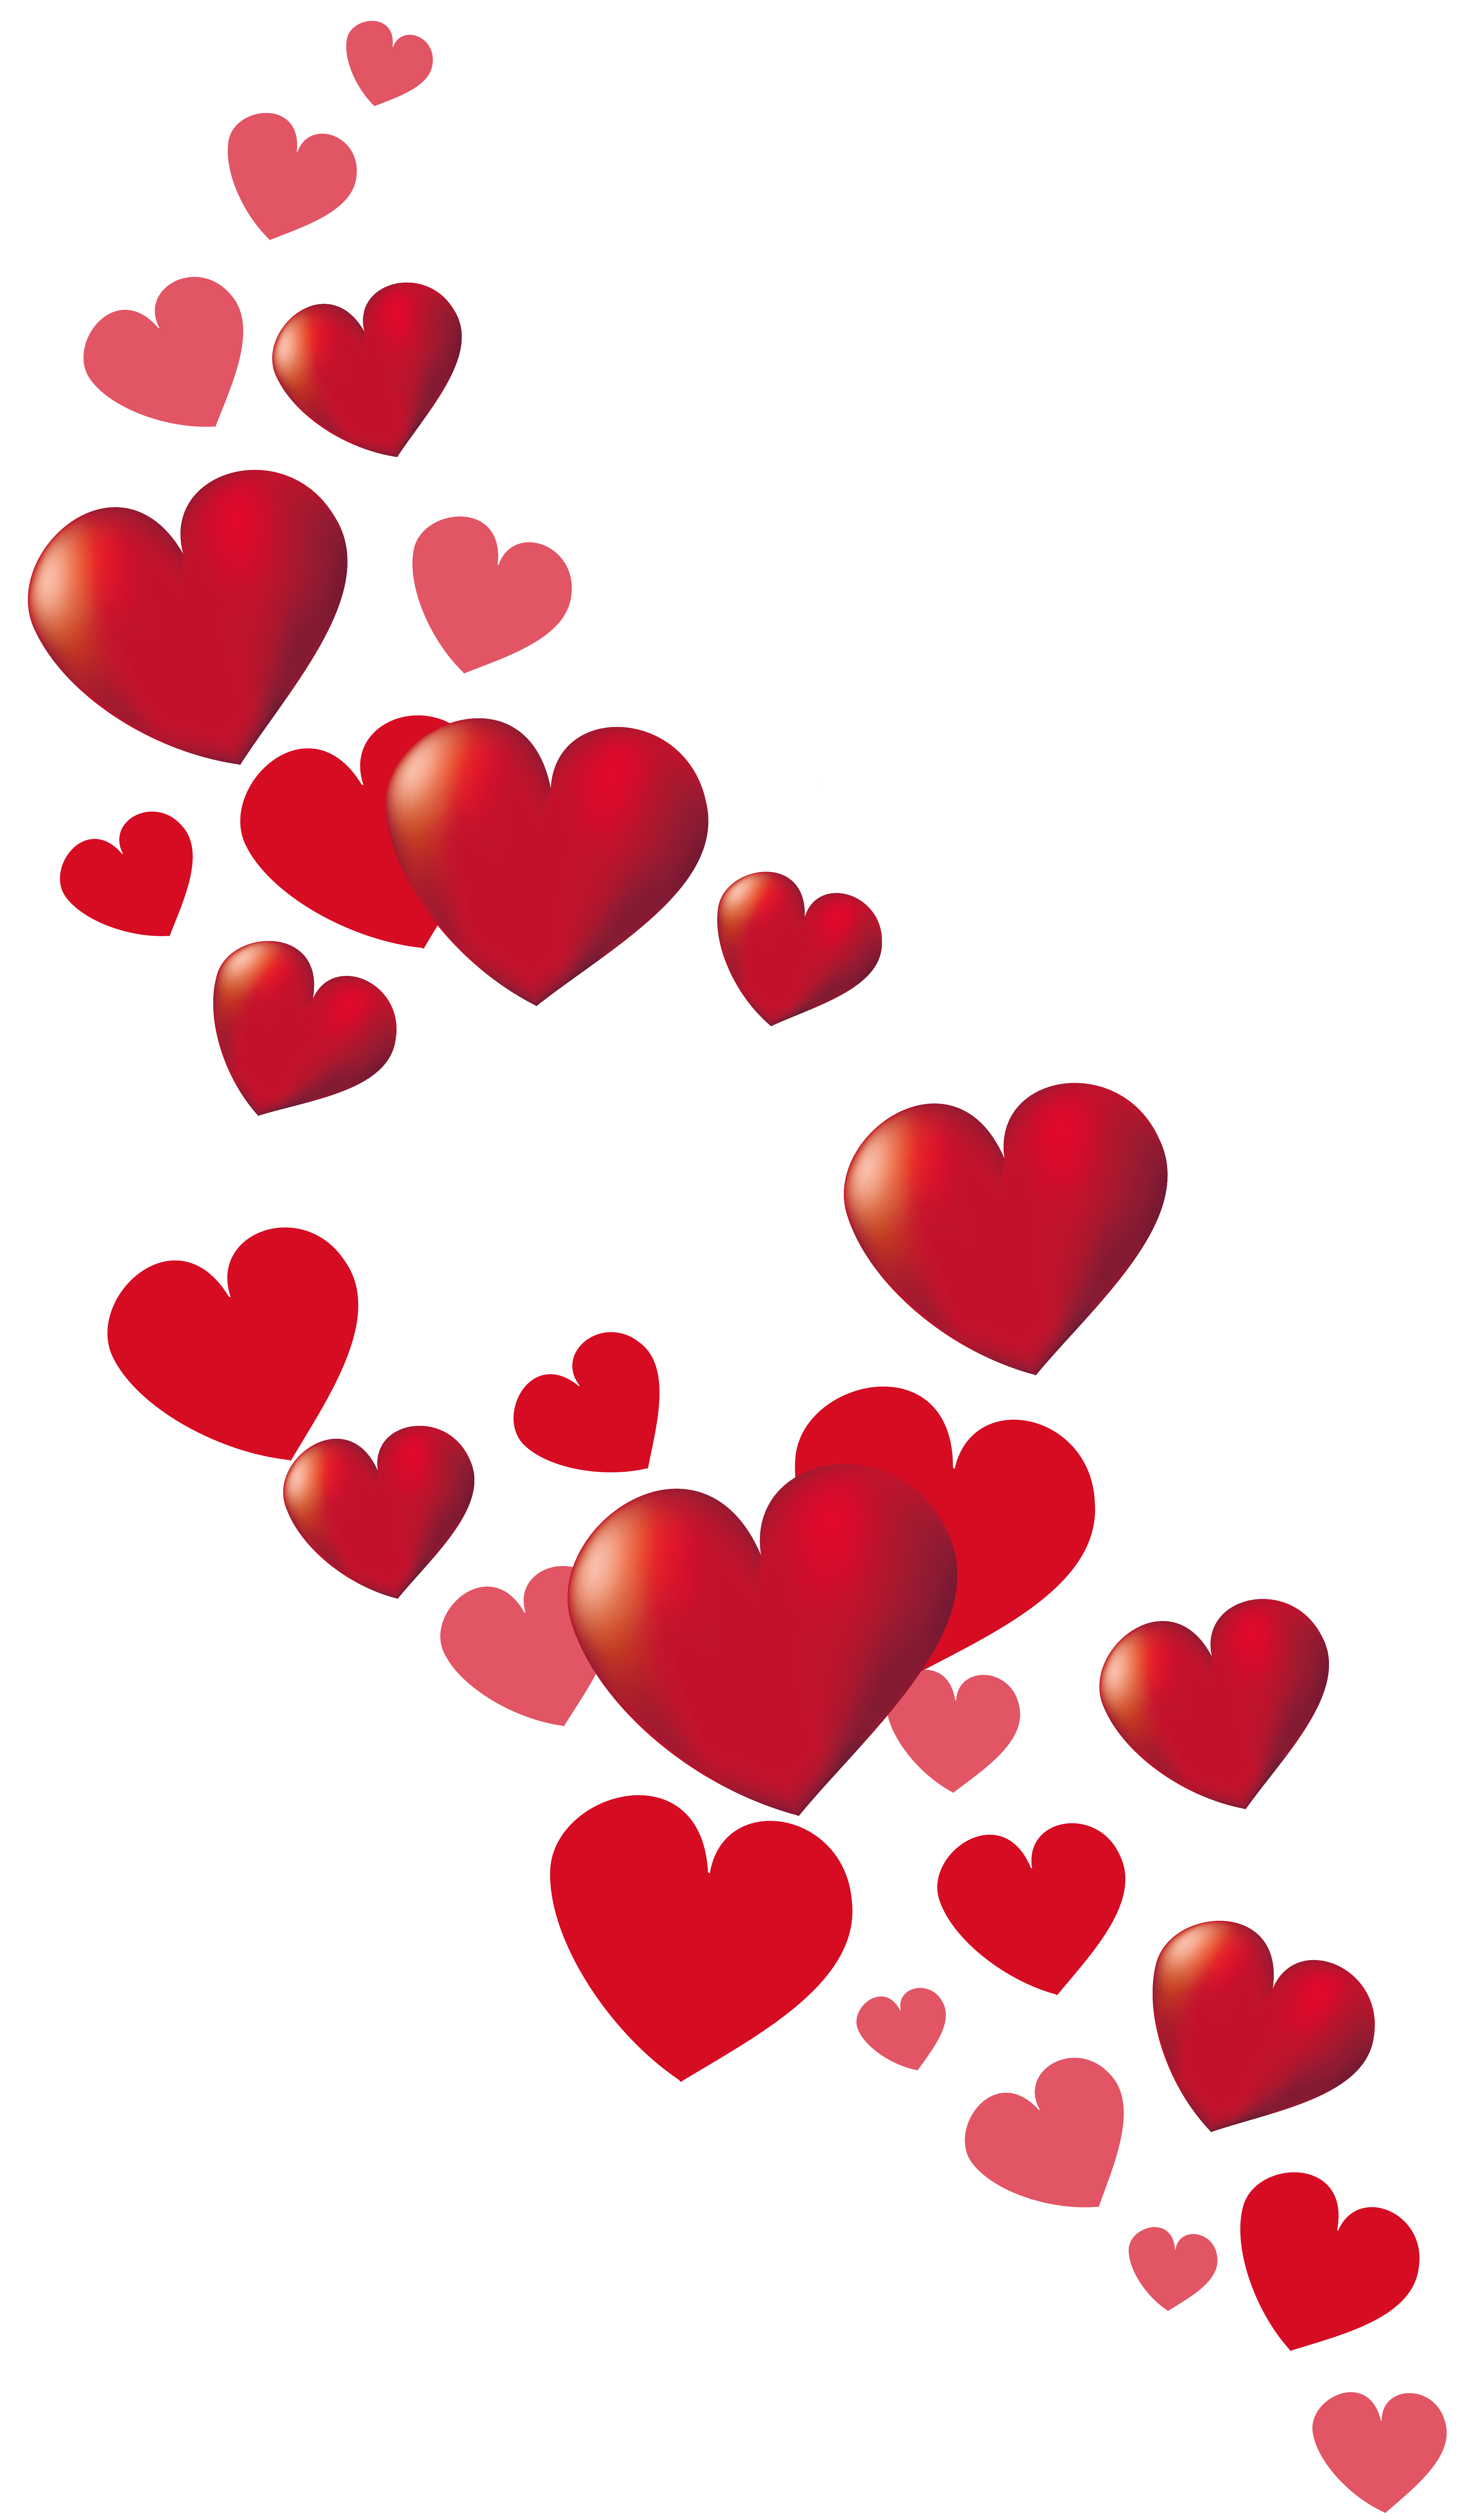 Valentine Hearts Decor PNG Clipart Picture.